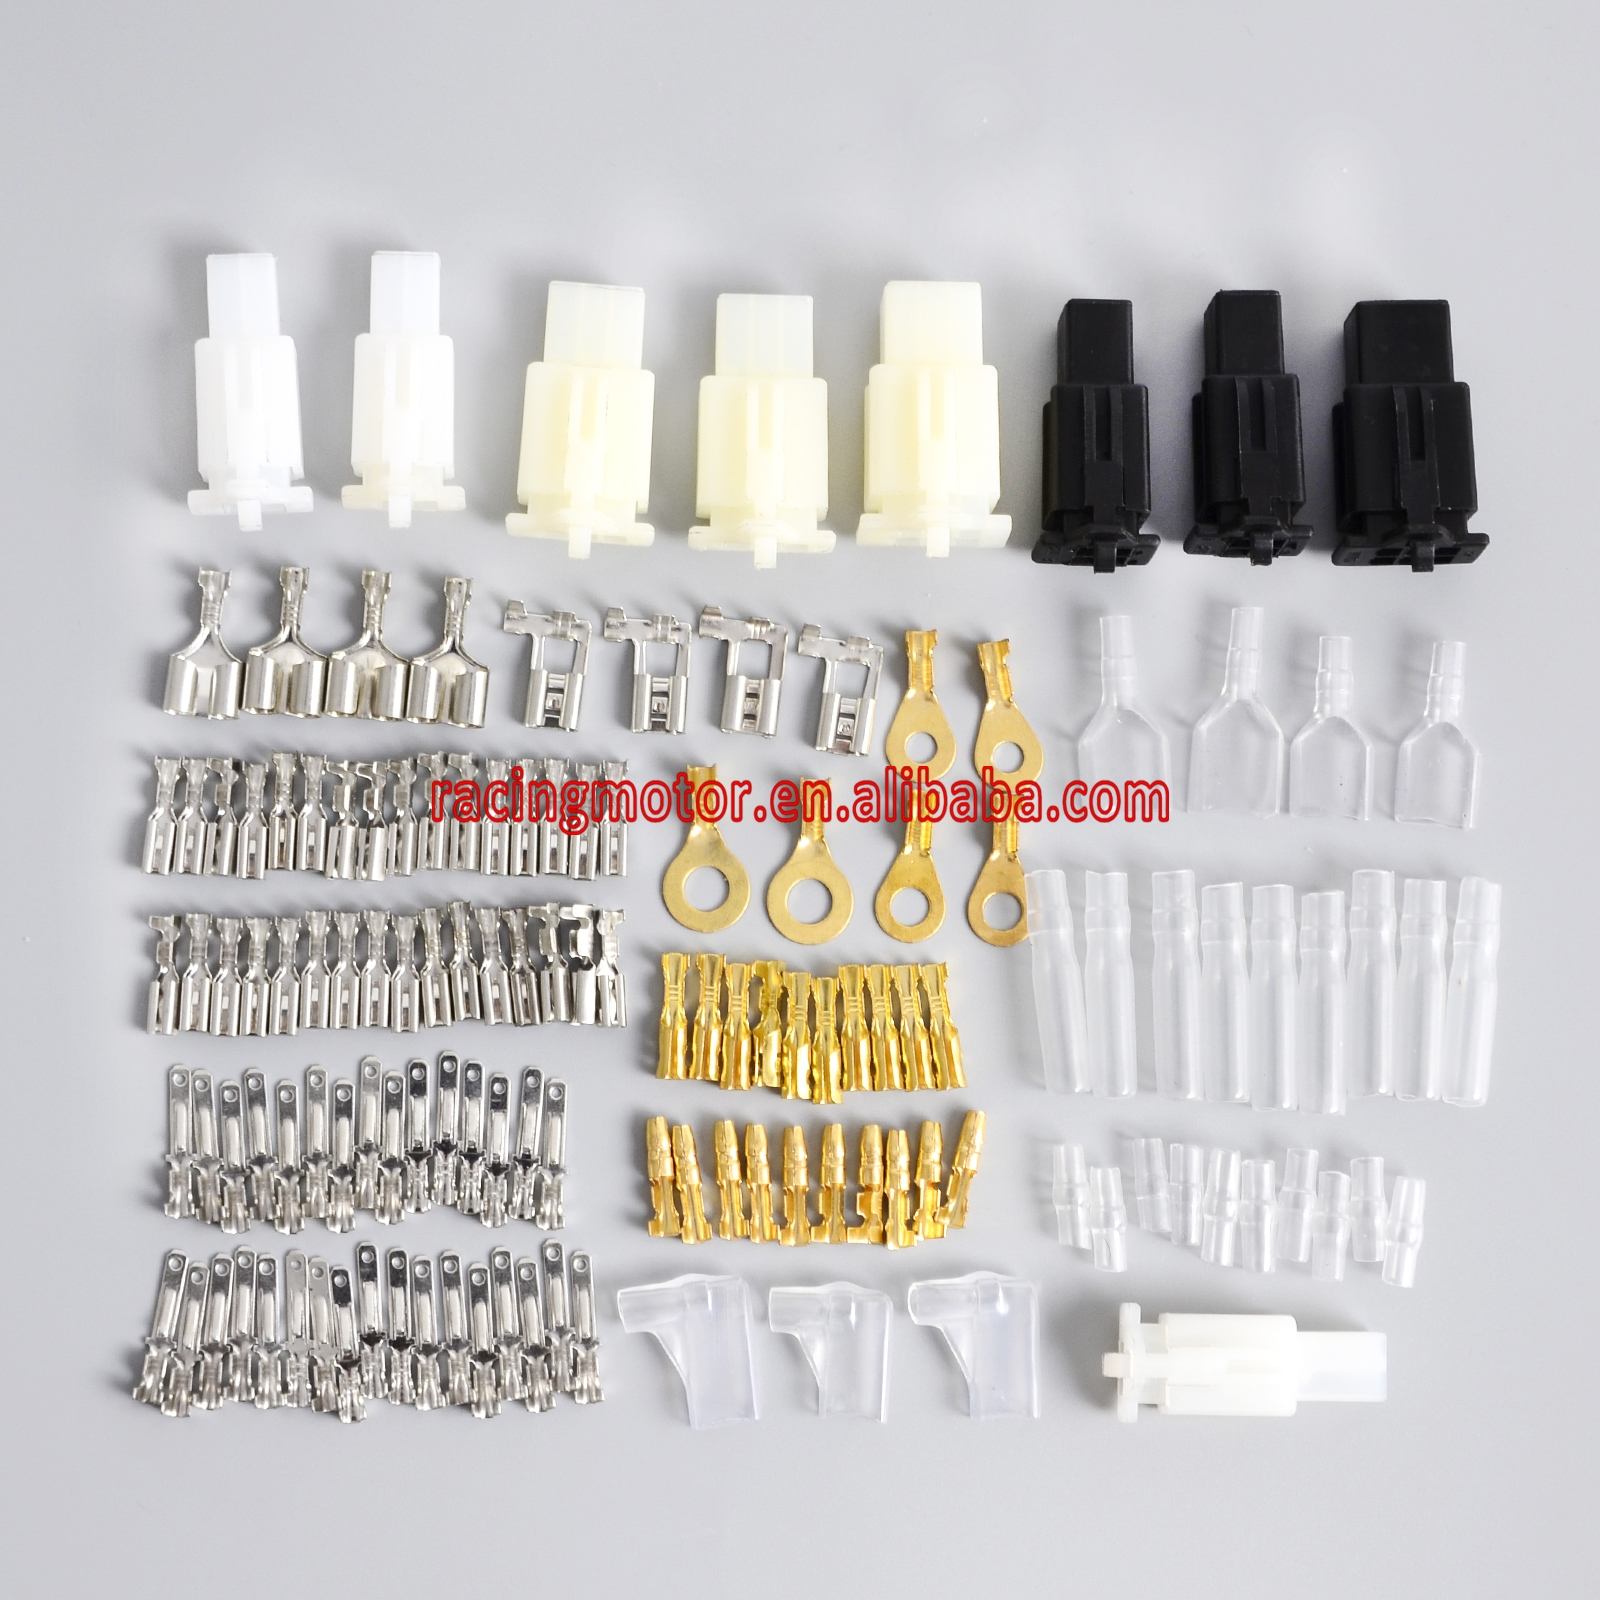 Motorcycle Connector Wiring Loom Automotive Harness Auto Terminal Repair Kit PVC Insulation Covers Tin Plate Brass  sc 1 st  AliExpress.com : automotive wiring harness repair - yogabreezes.com